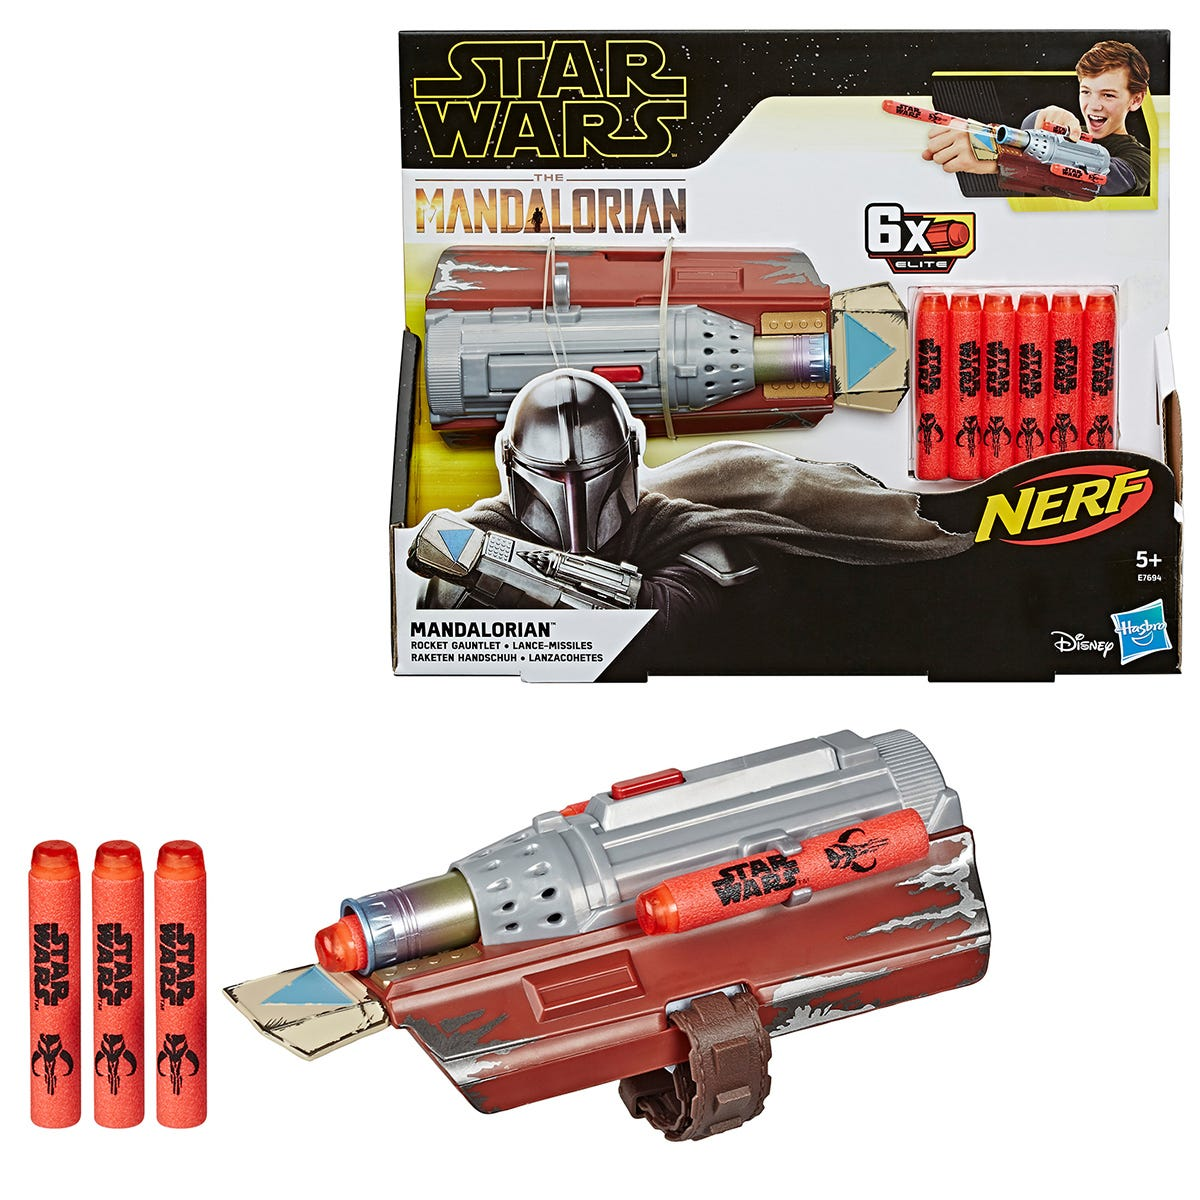 Nerf Star Wars Role Play Mandalorian Rocket Gauntlet with 6 Darts